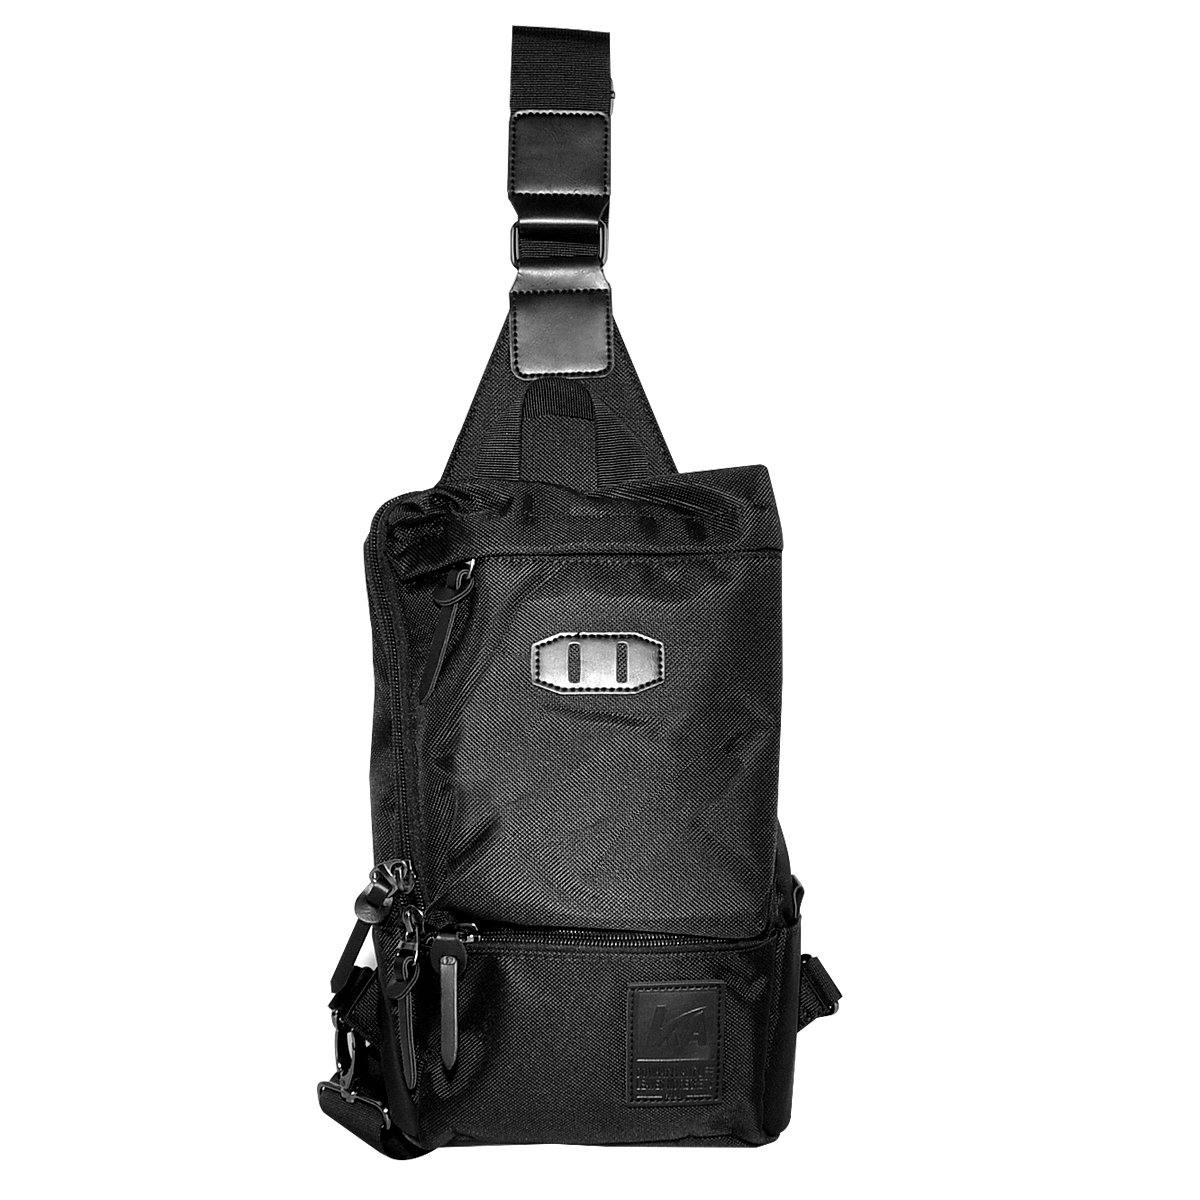 LC Prime Sling Bag Chest Bag Shoulder Backpack Rucksack Water Resistant Sack Pouch for Travel Outdoor Cycling Camping Hiking Mountaining Cavas oxford black, by